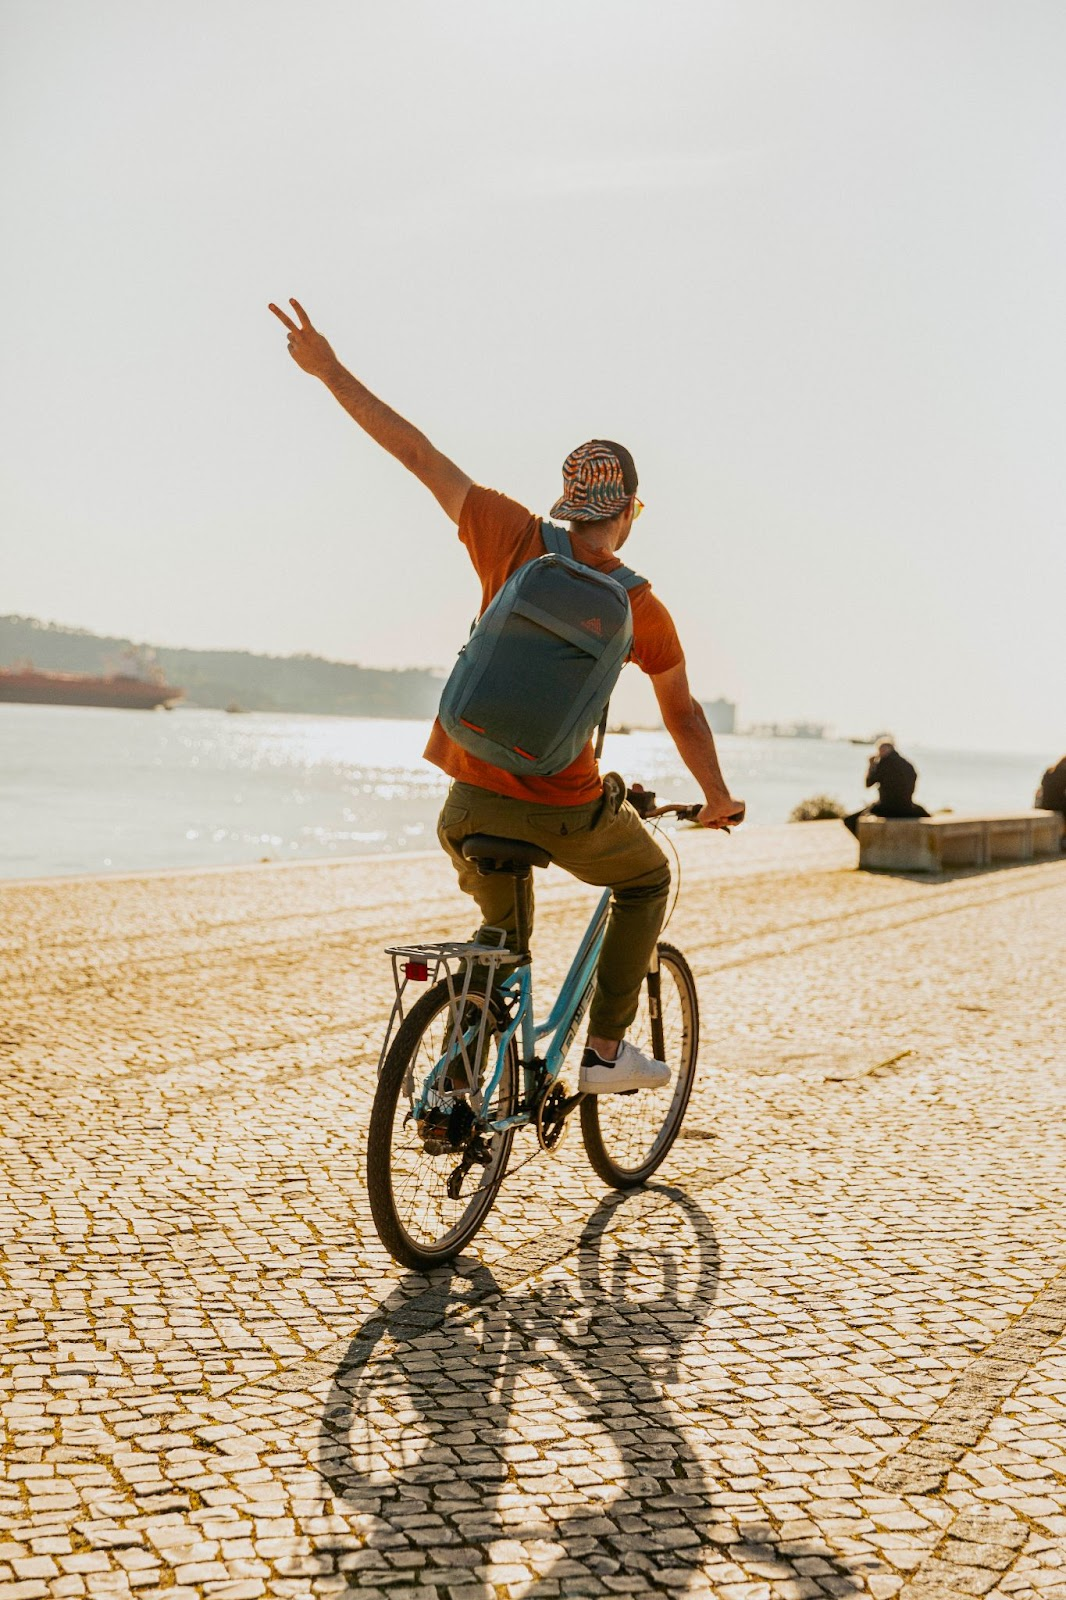 A man on a bicycle throws a peace sign.